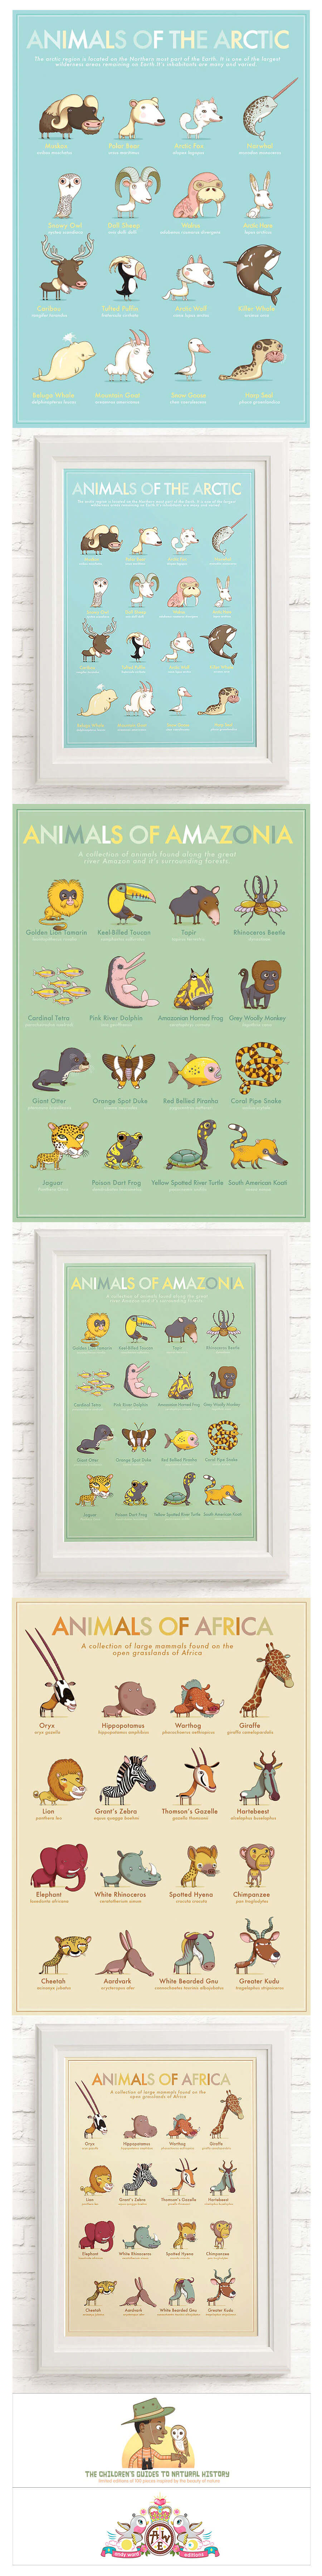 animals-around-the-world set of animal illustration collection by Andy Ward Studio